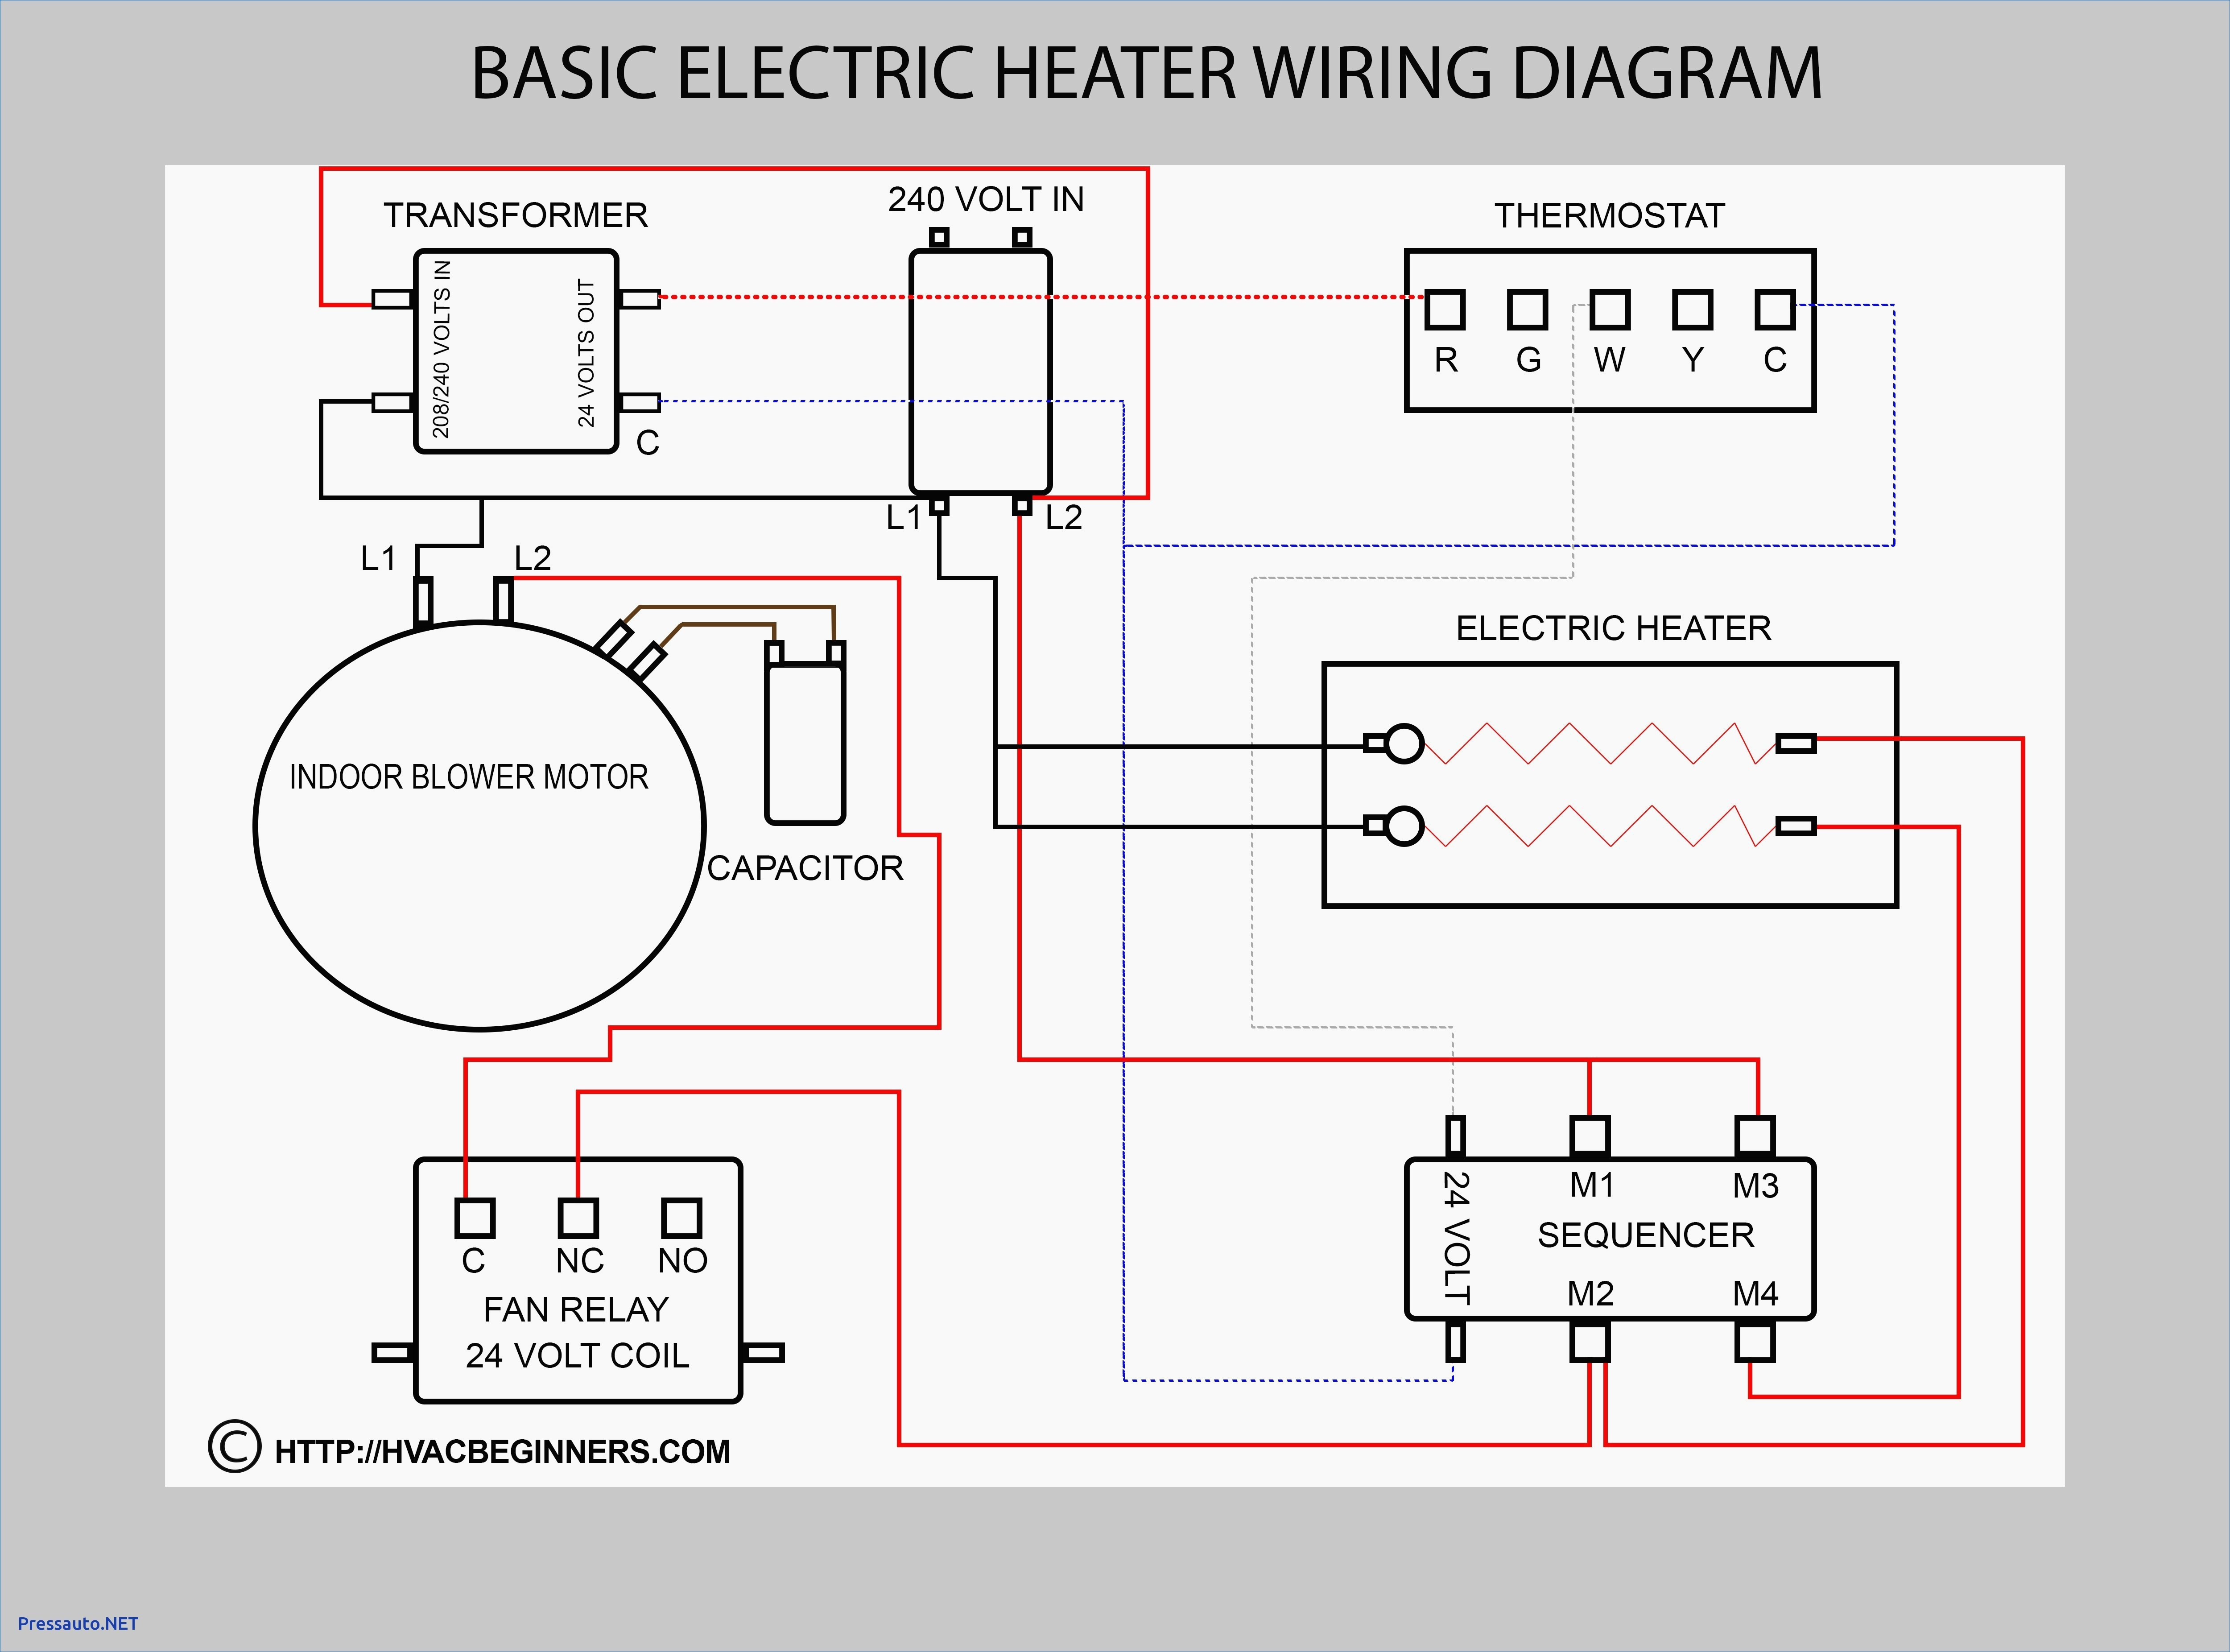 electrical wiring diagram software open source Collection-house thermostat wiring diagram Collection Wiring Diagrams For Central Heating Save Wiring Diagram For Heating DOWNLOAD Wiring Diagram 19-b